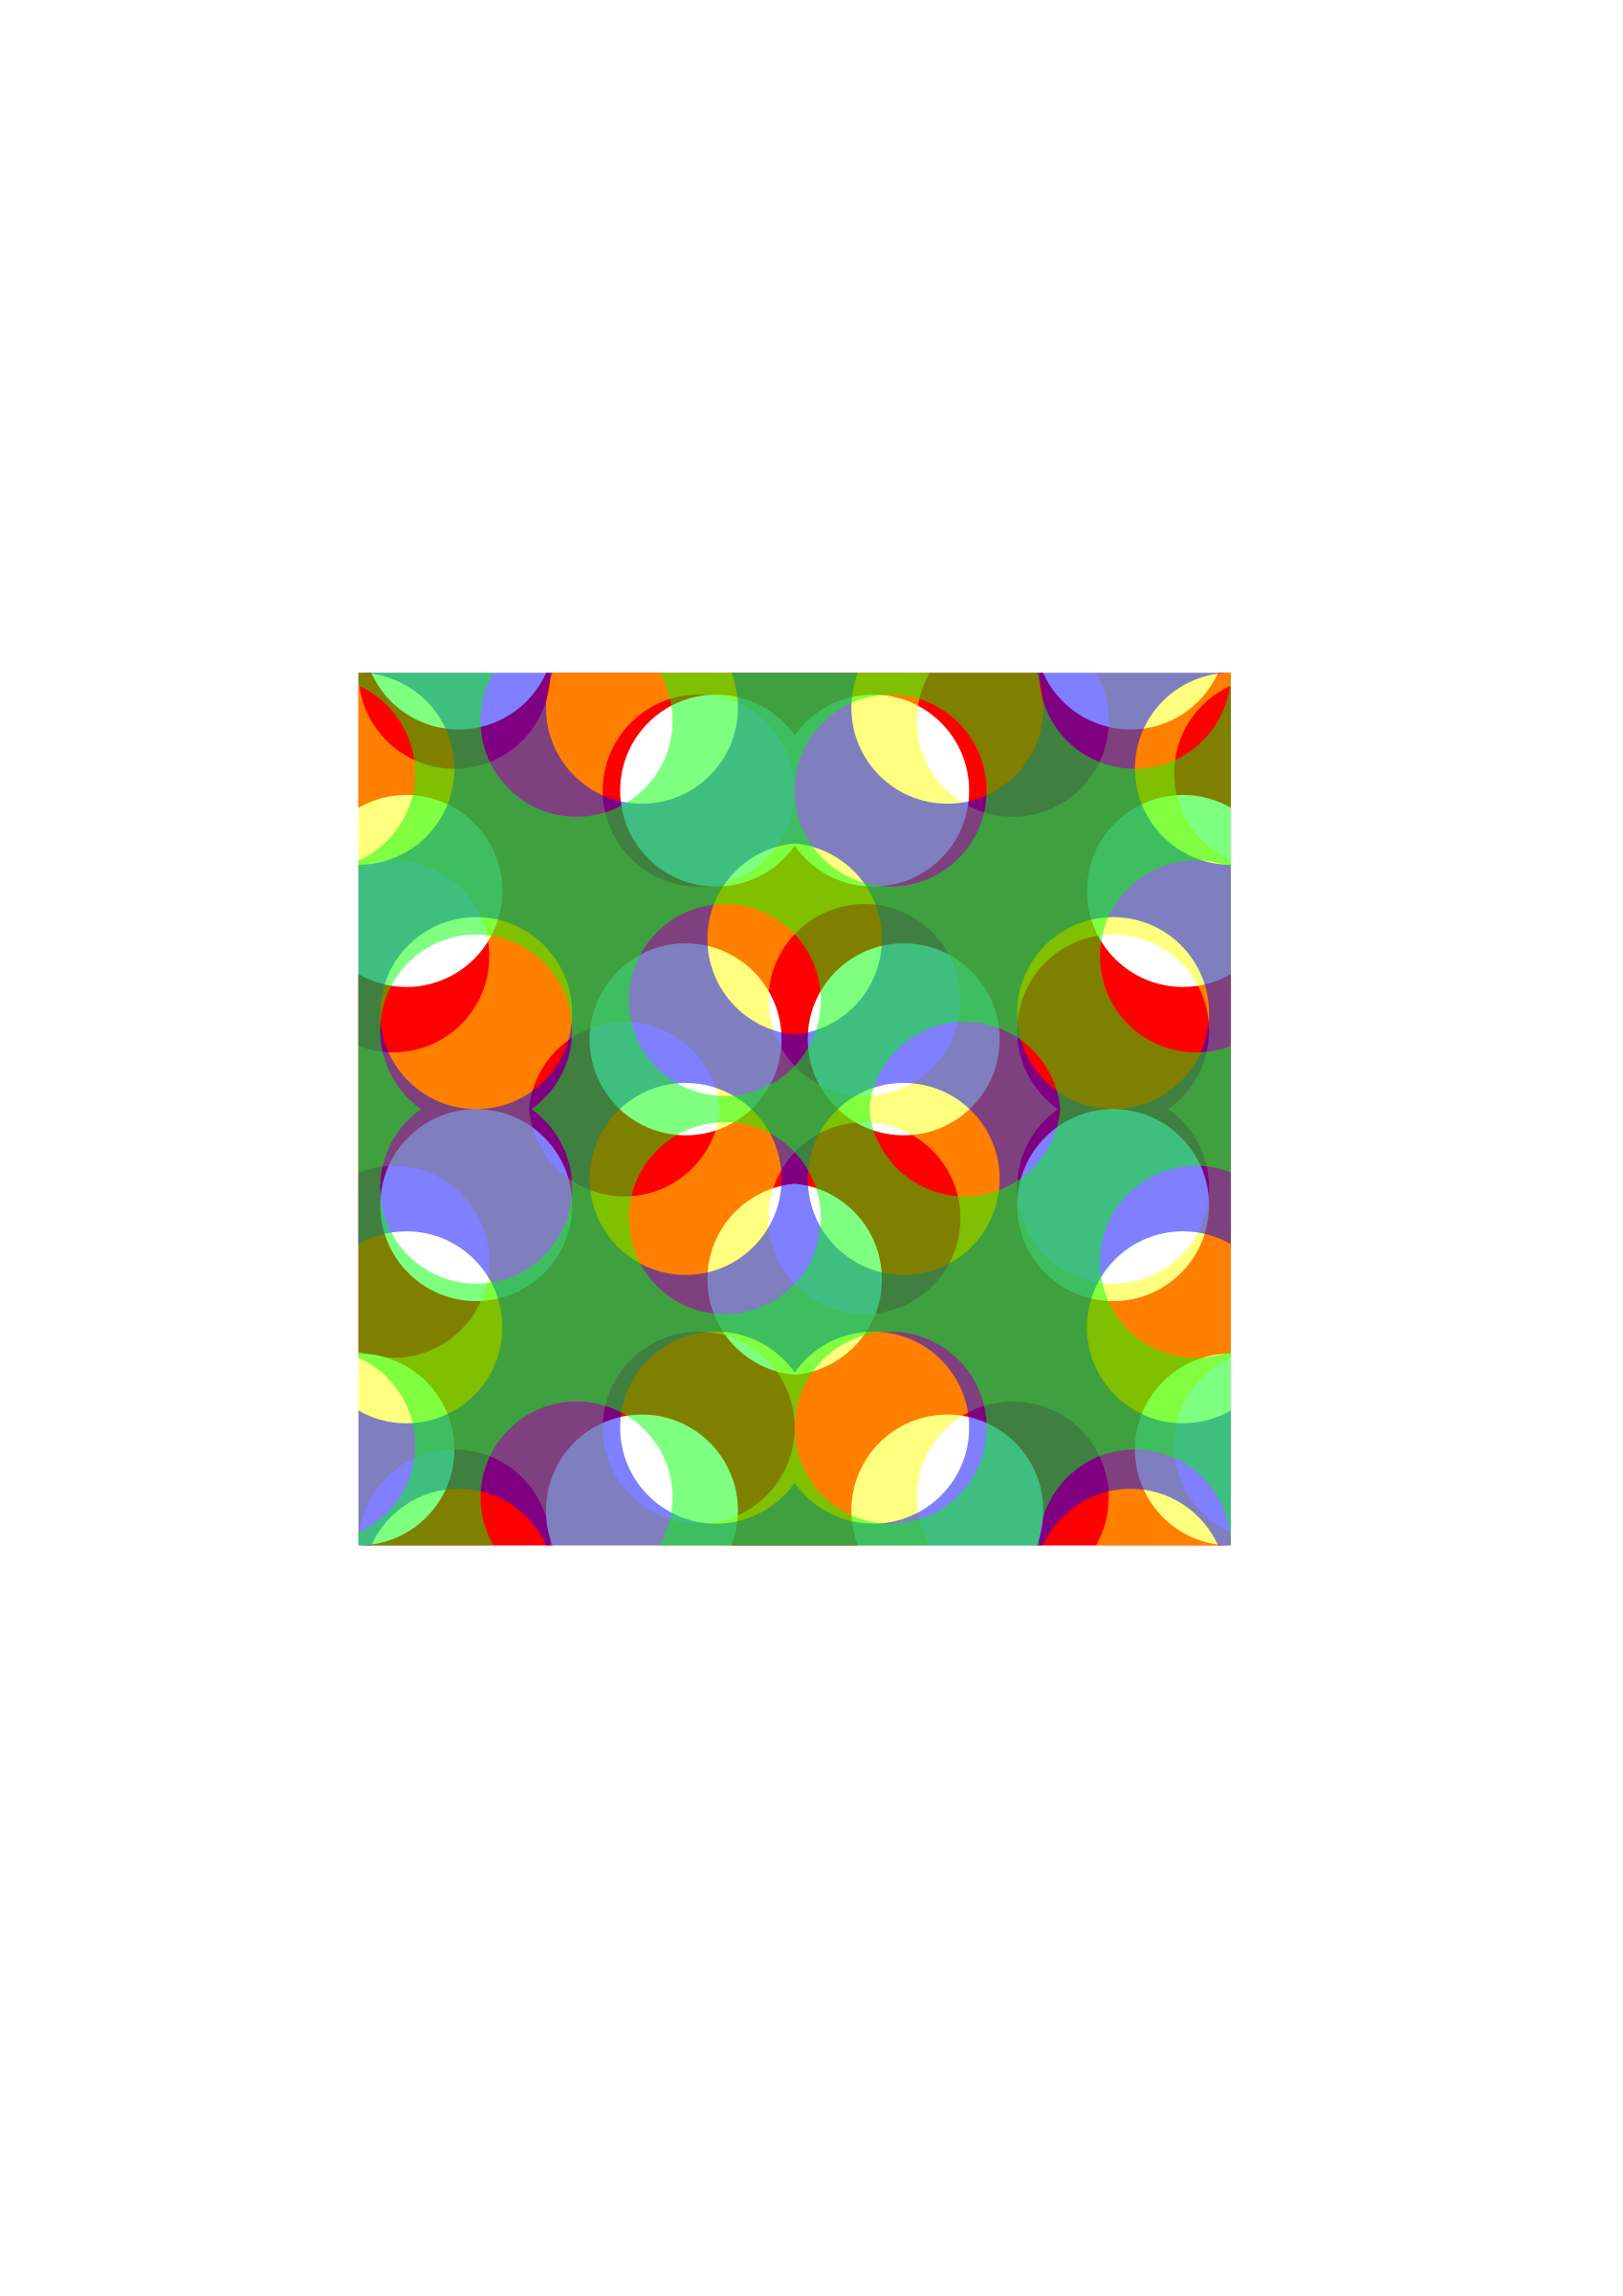 Colourful Square pattern 3 by jabbamp